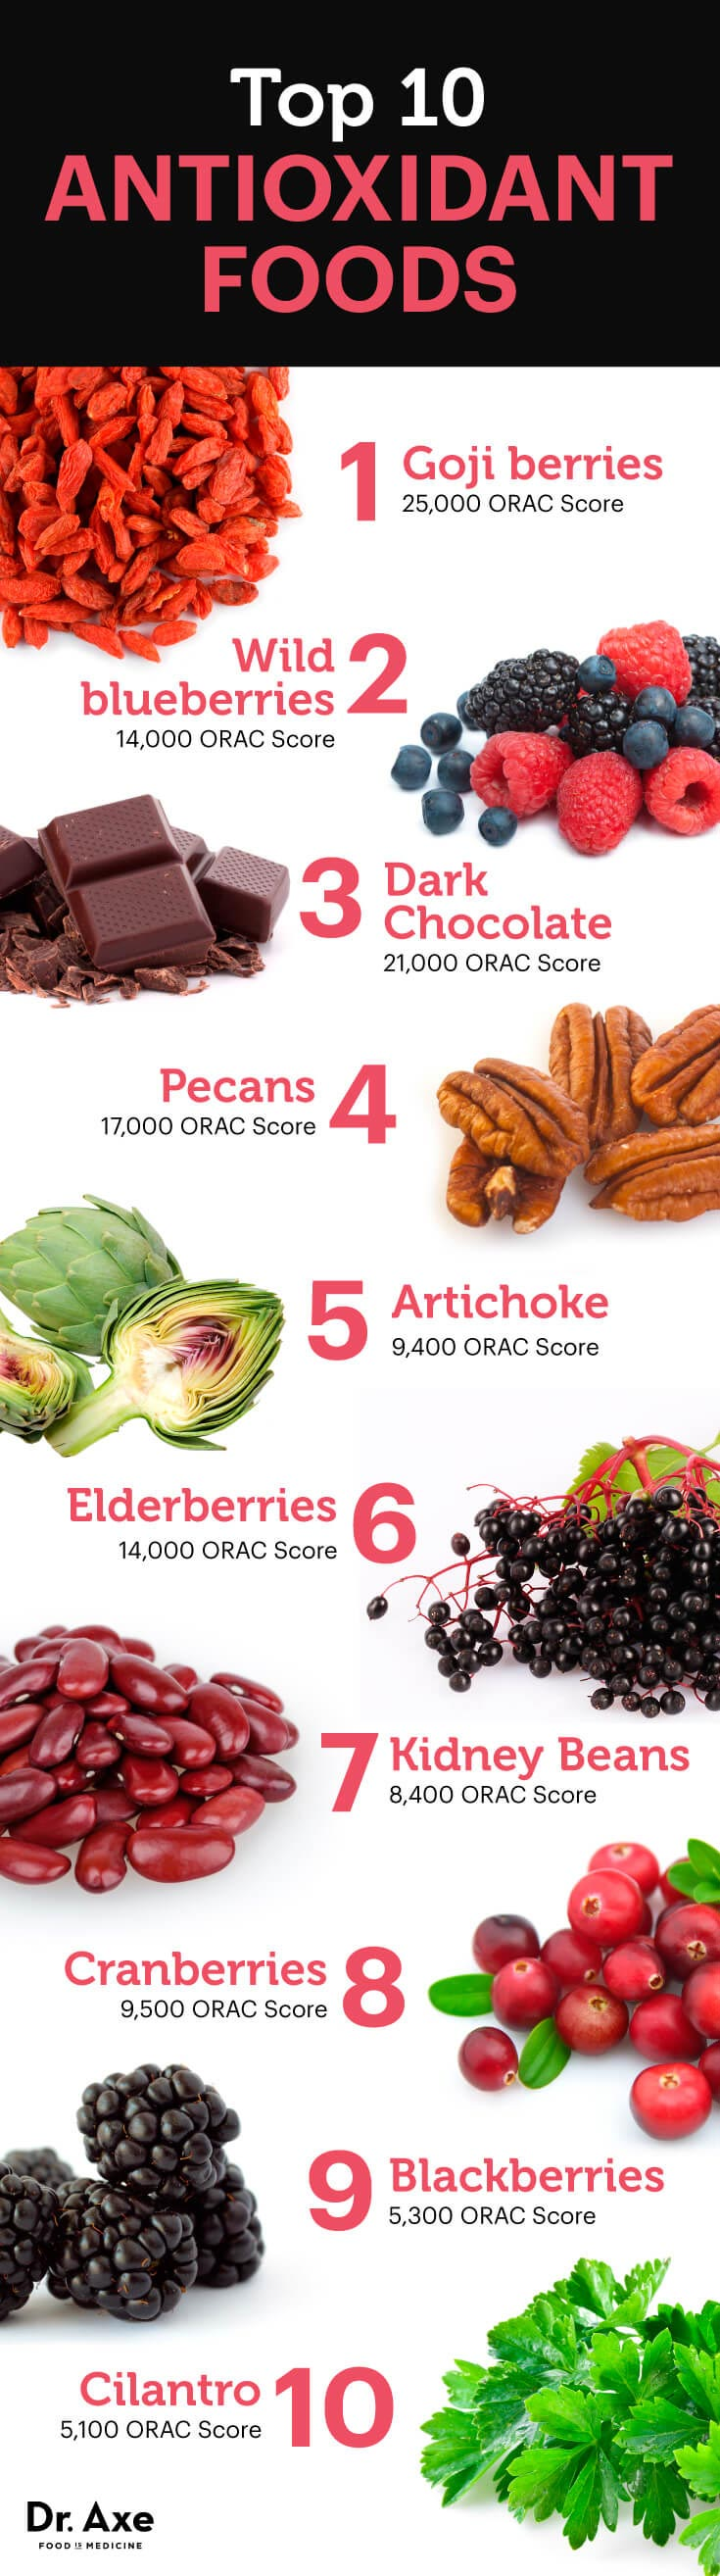 list of antioxidant foods